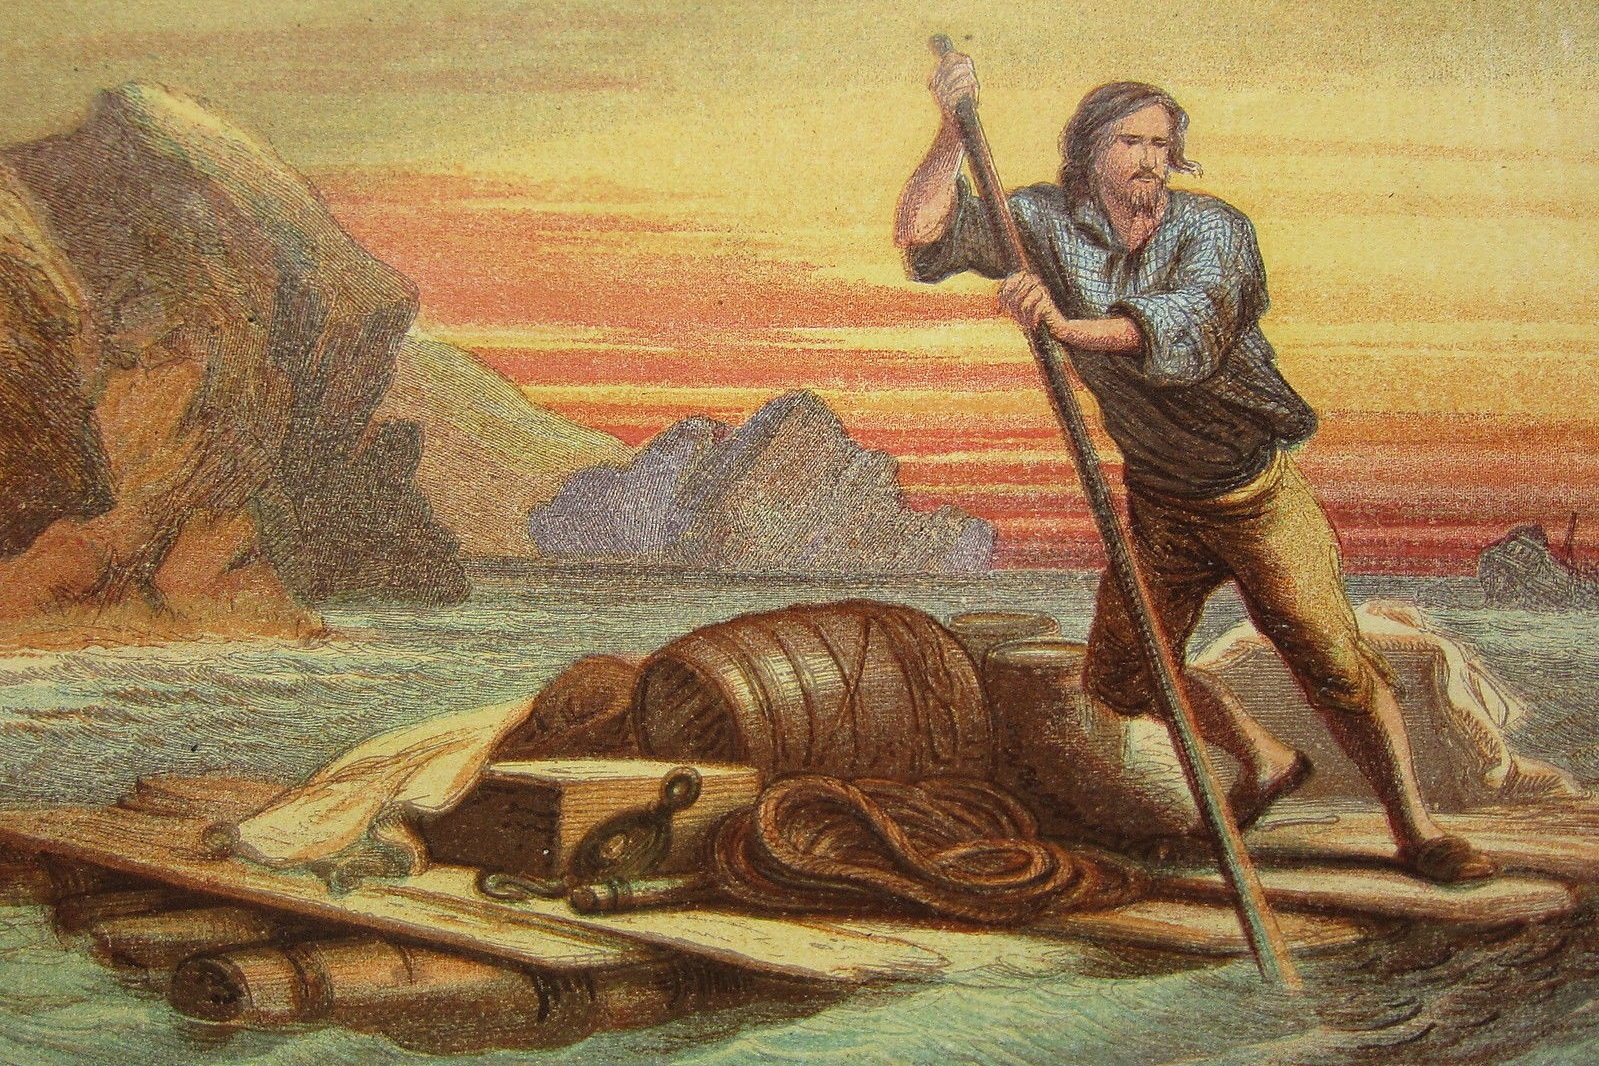 episode 38 - Robinson Crusoe